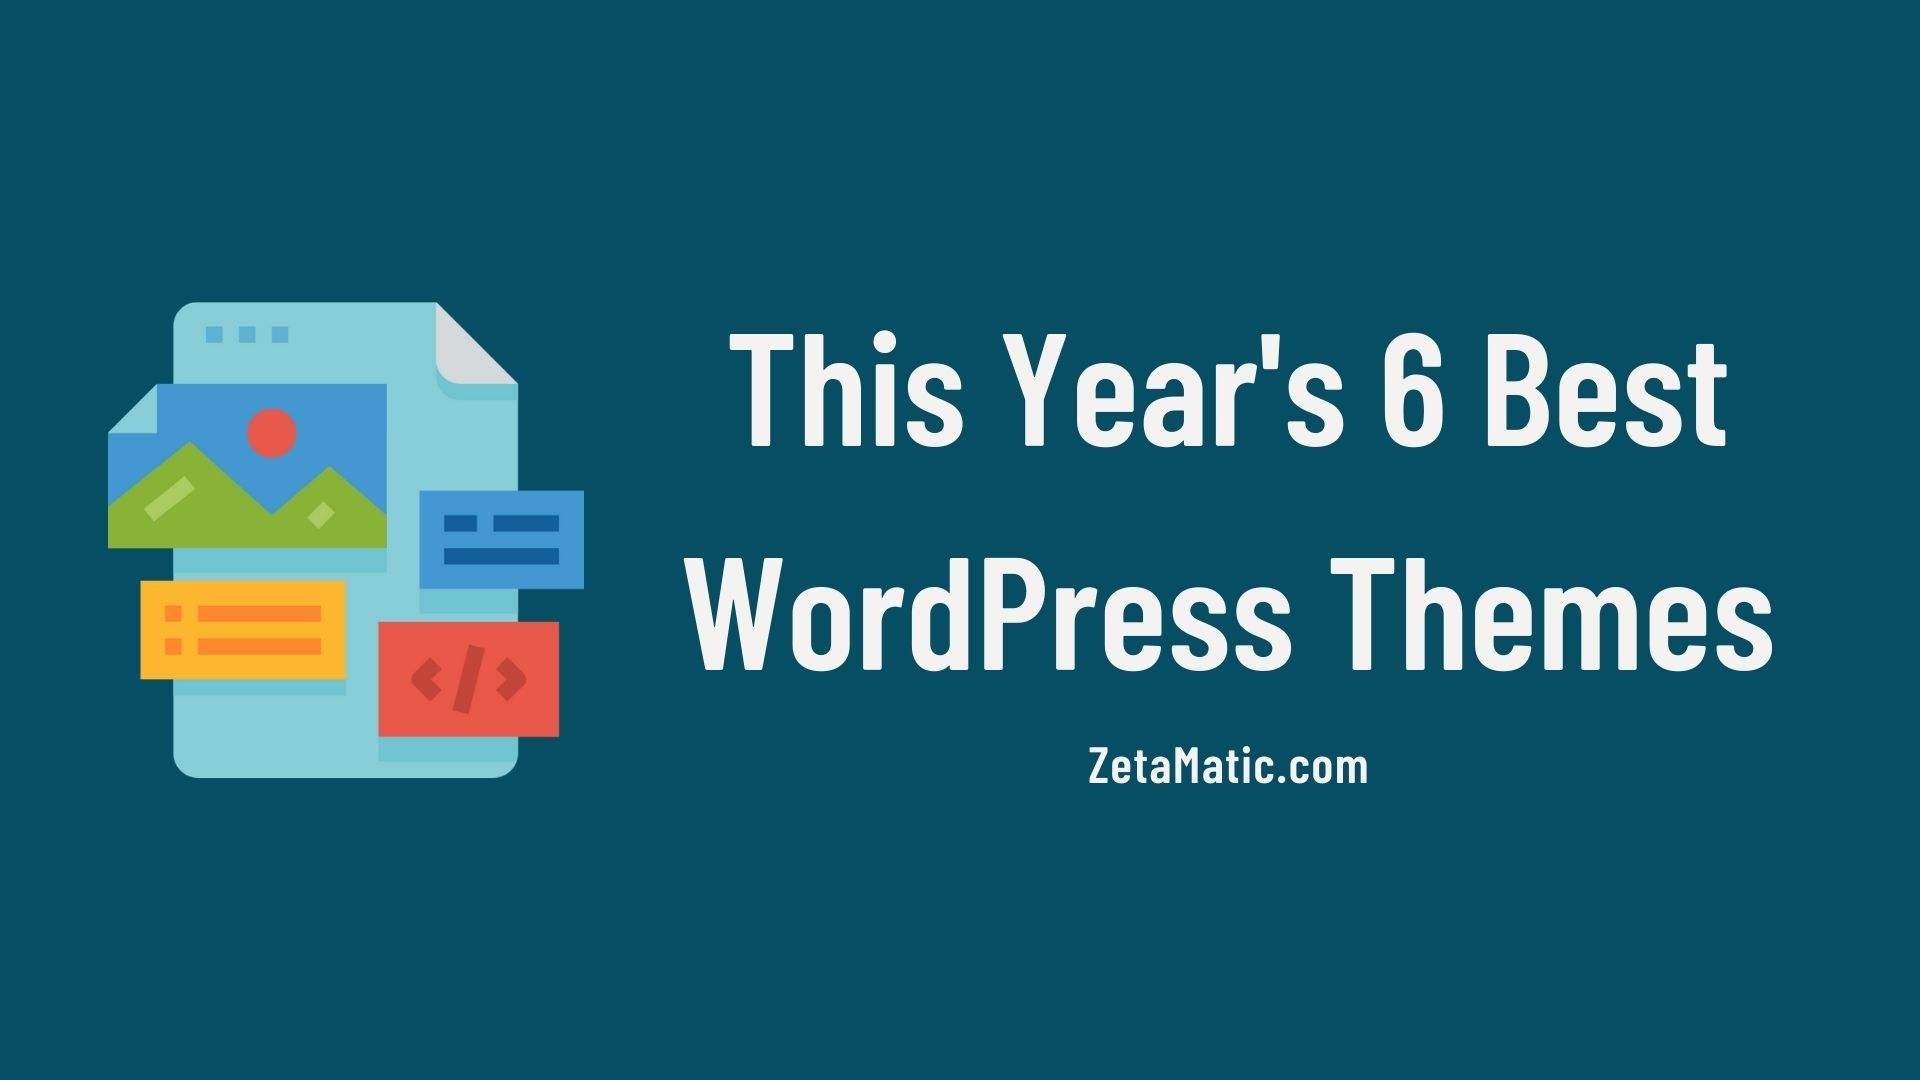 This Year's 6 Best WordPress Themes